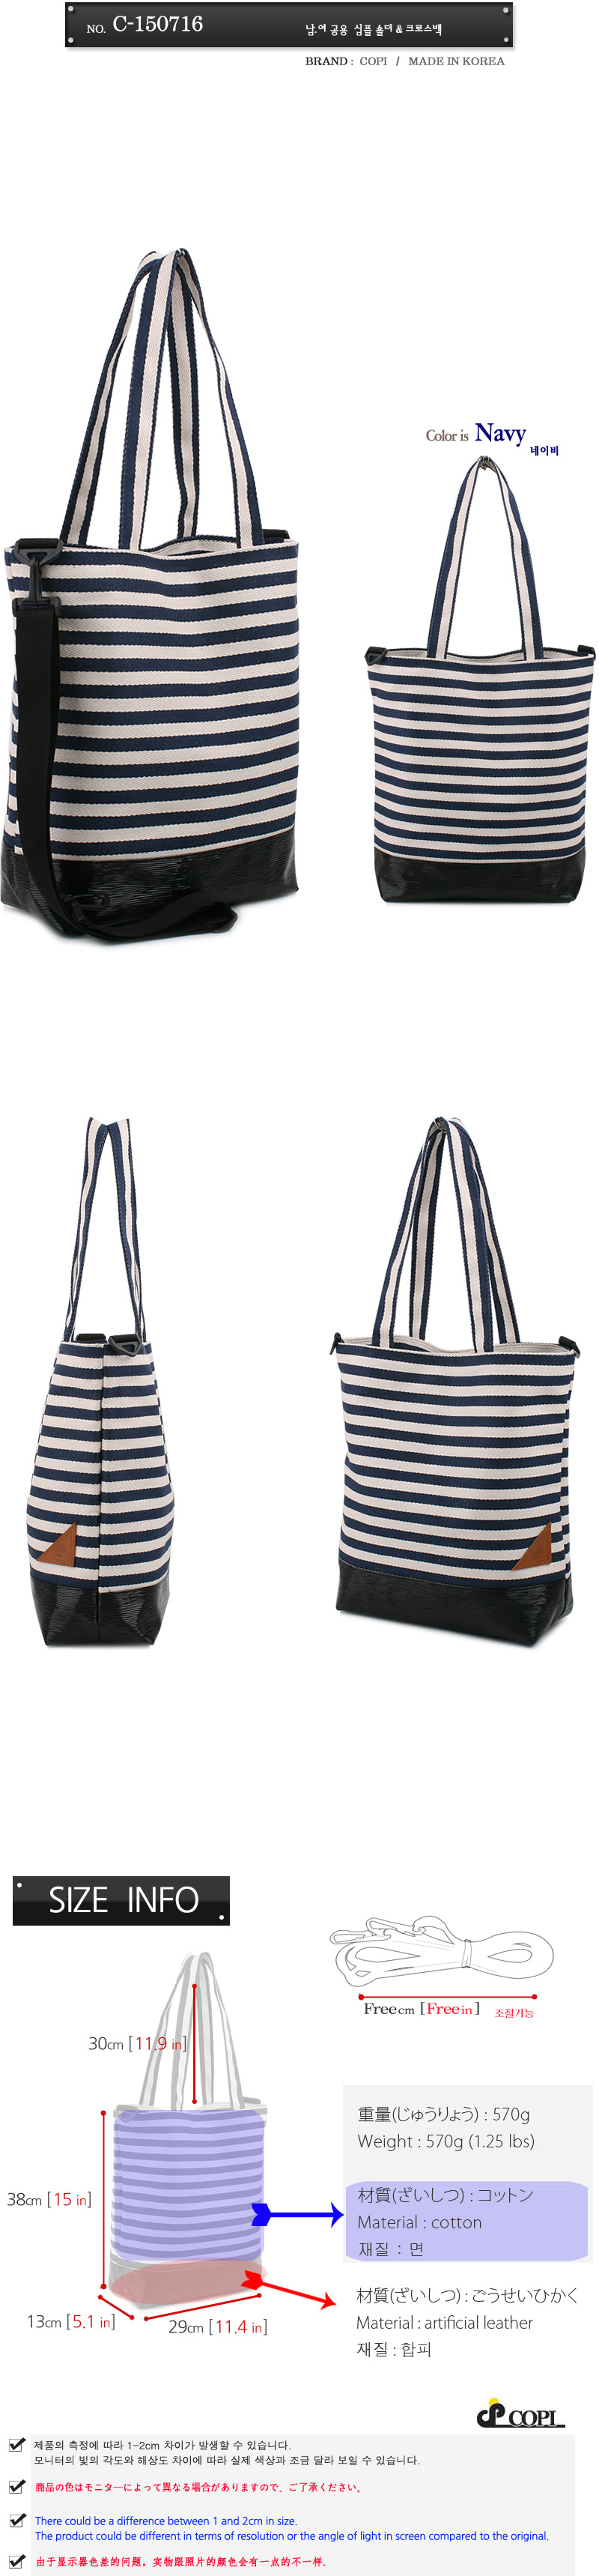 copi handbag no.C-150716